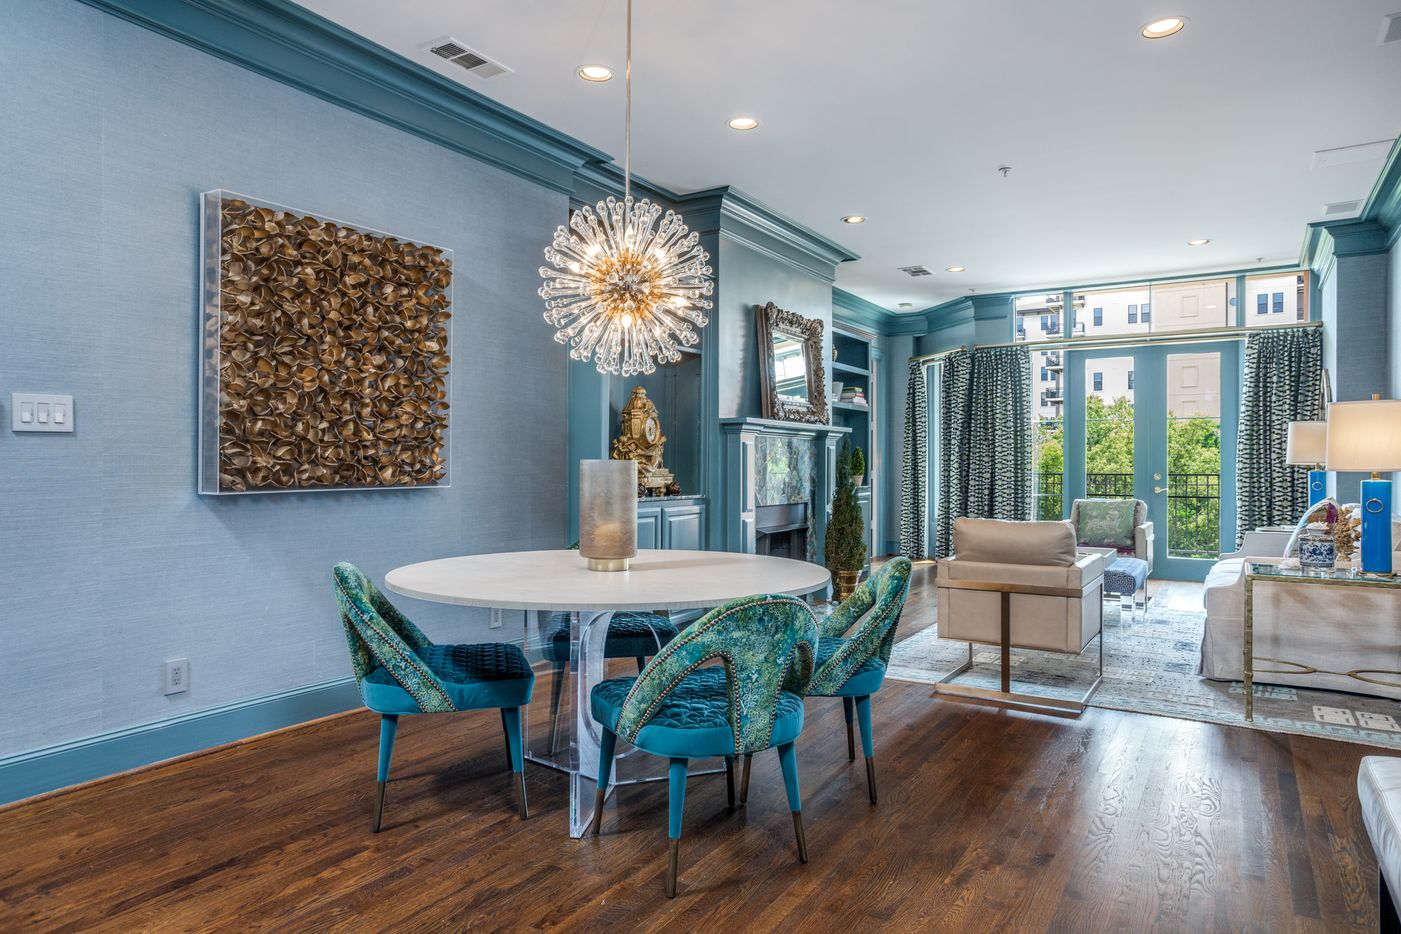 Take a look inside this colorful condo at 3535 Gillespie St. No. 306 in Dallas.